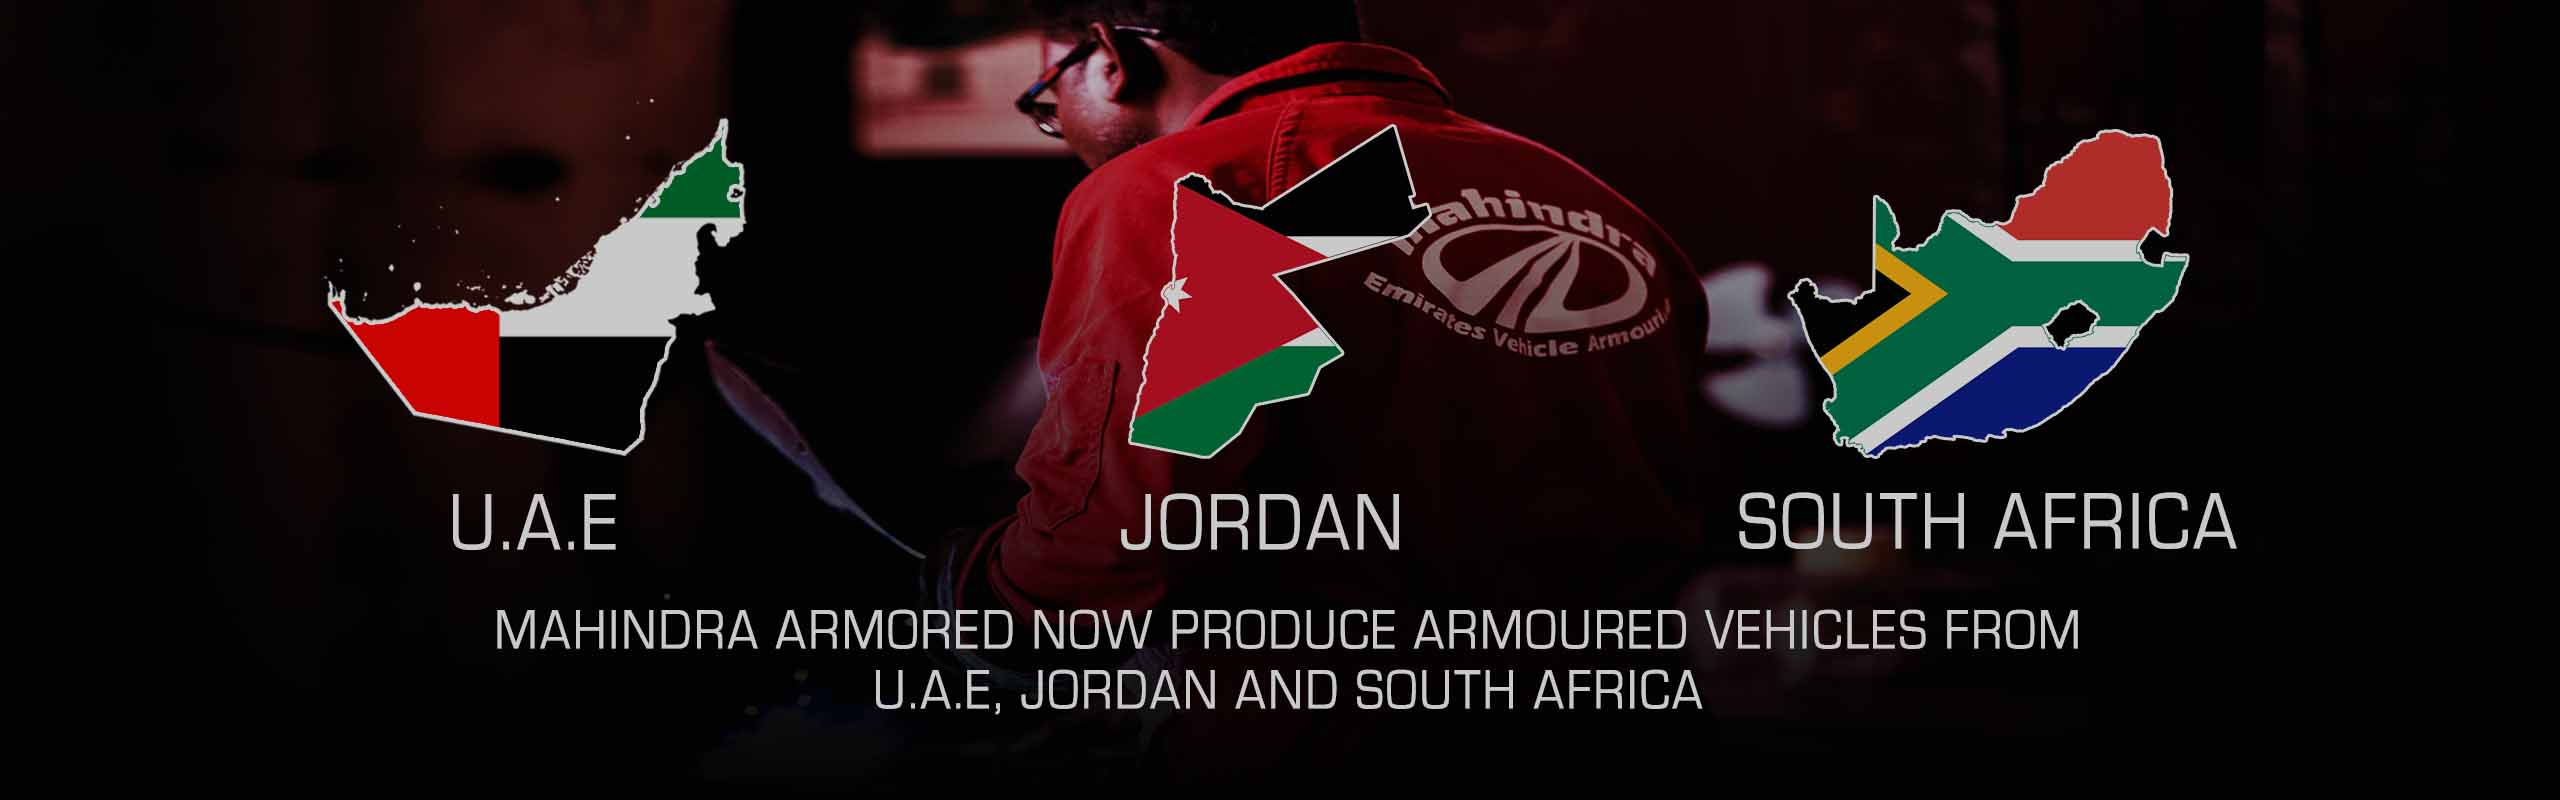 Mahindra Armoured Vehicles UAE - Jordan